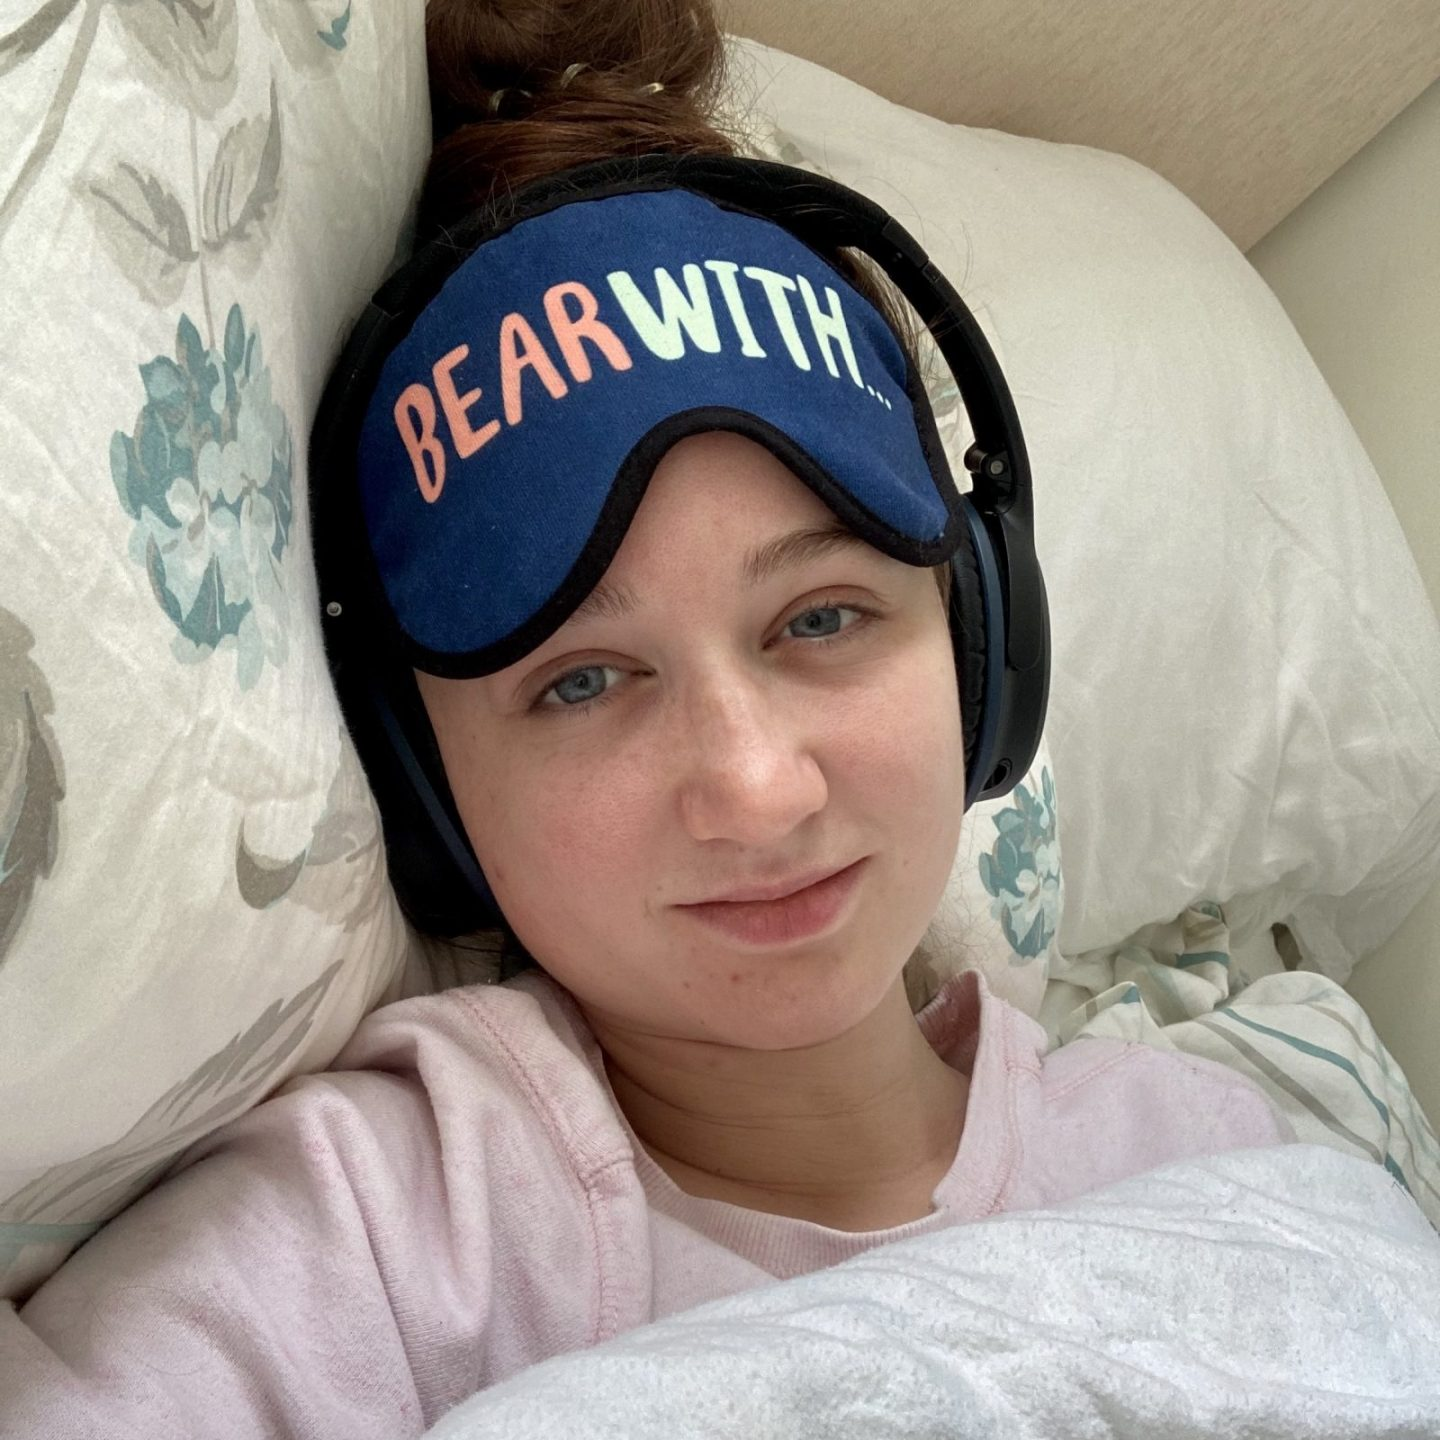 selfie of pippa in bed, no make-up and looking exhausted, wearing pink pyjamas, black noise cancelling headphones and a blue eyemask with the words 'bear with' printed on the front